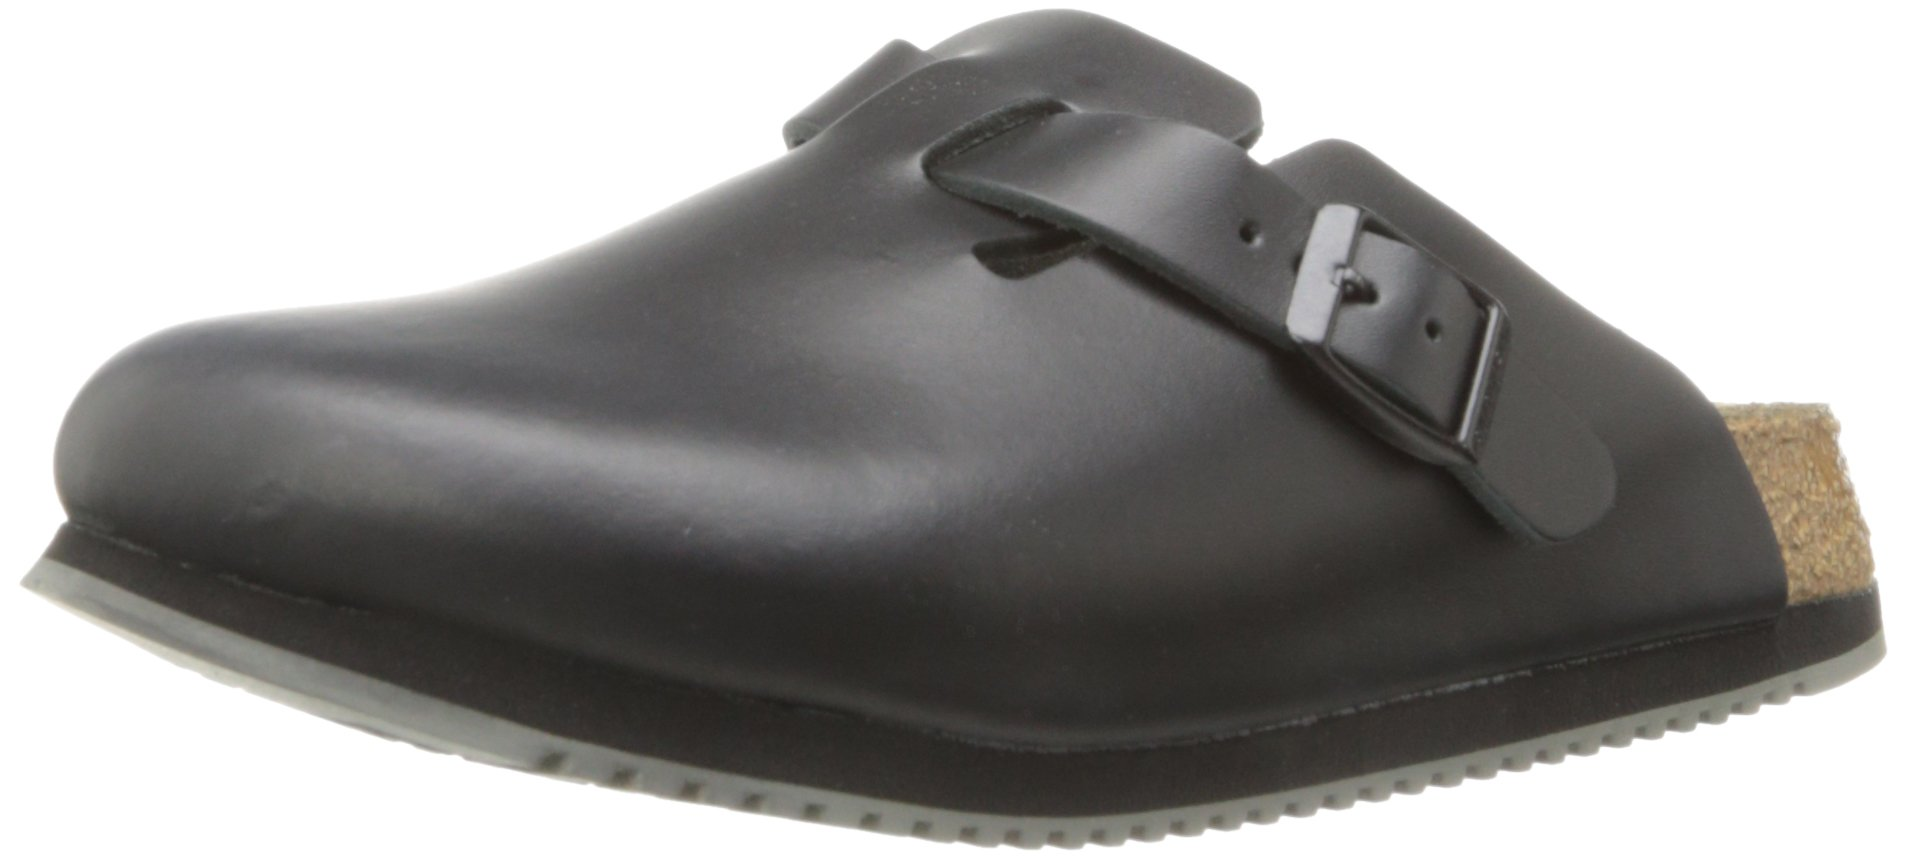 Birkenstock Unisex Professional Boston Super Grip Leather Slip Resistant Work Shoe,Black,36 M EU by Birkenstock